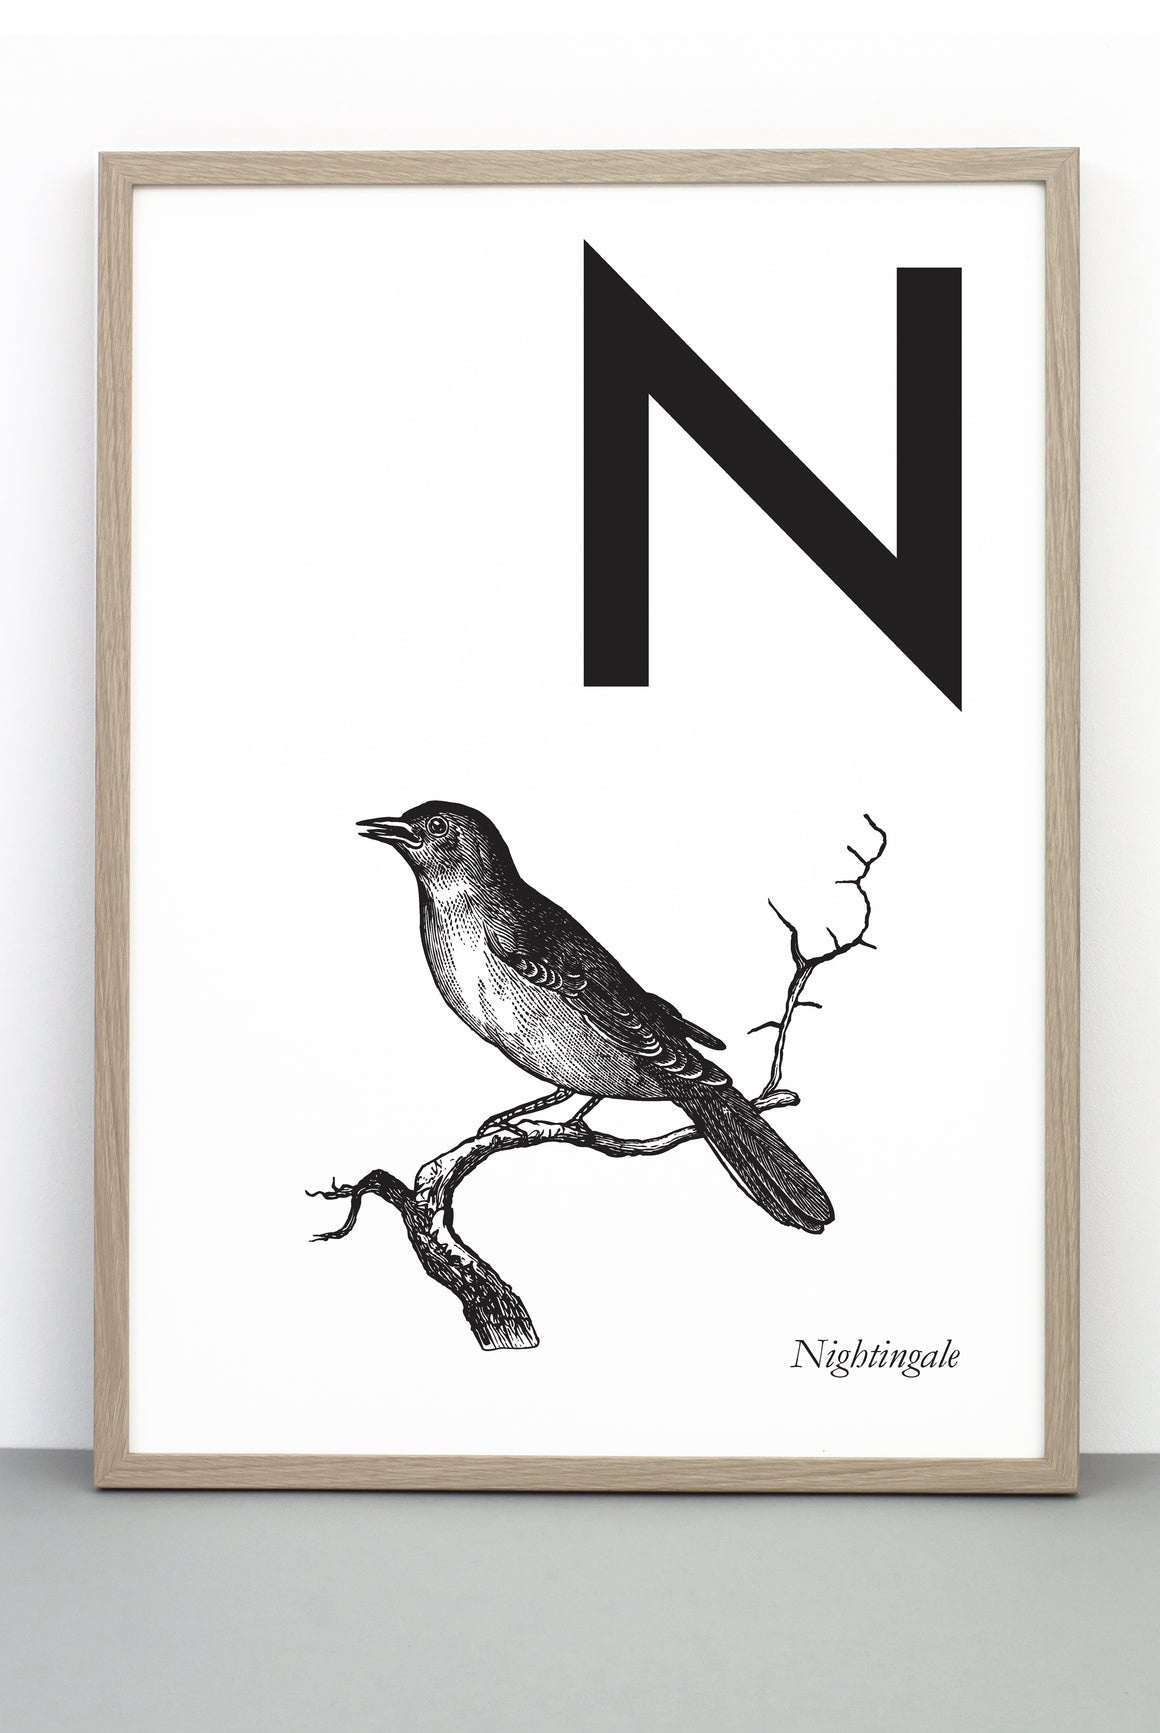 ANIMAL LETTER N, NIGHTINGALE, N DOWNLOADABLE PRINT